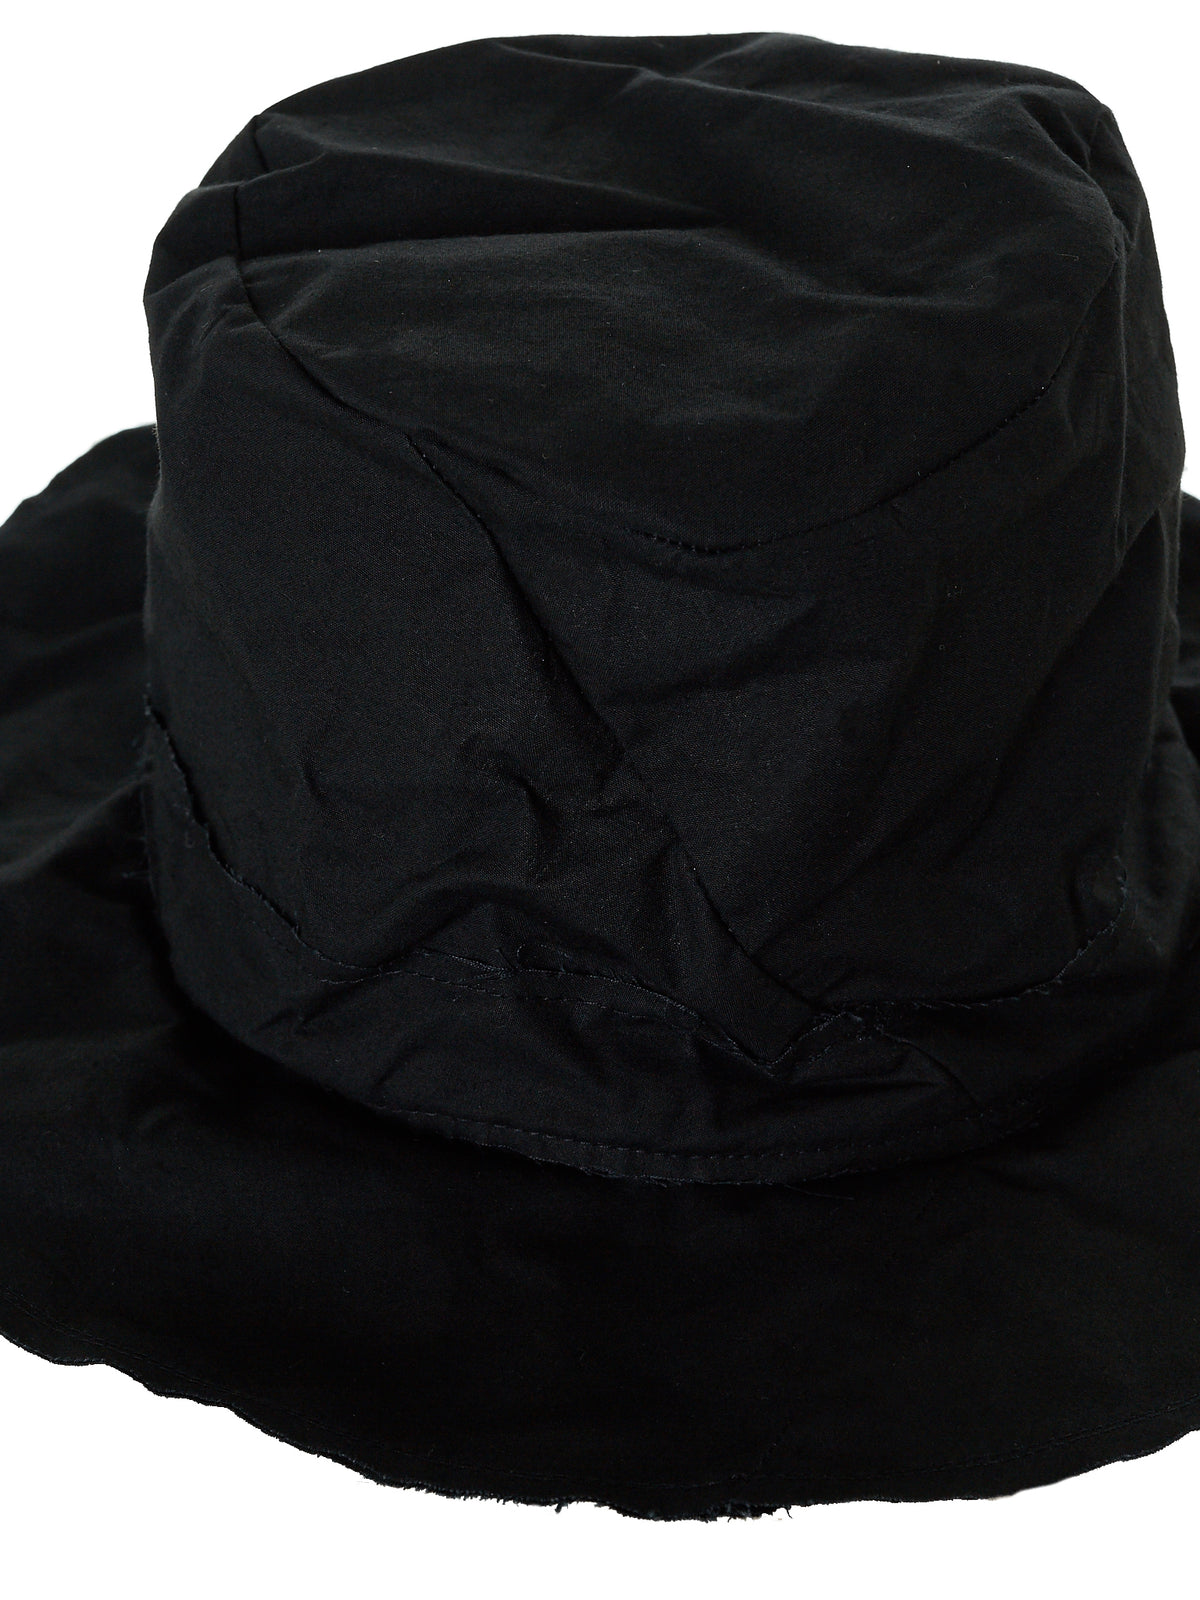 'Traveller' Waxed Hat (TRAVELLER-M-BIG-WXC-MB-BLACK)